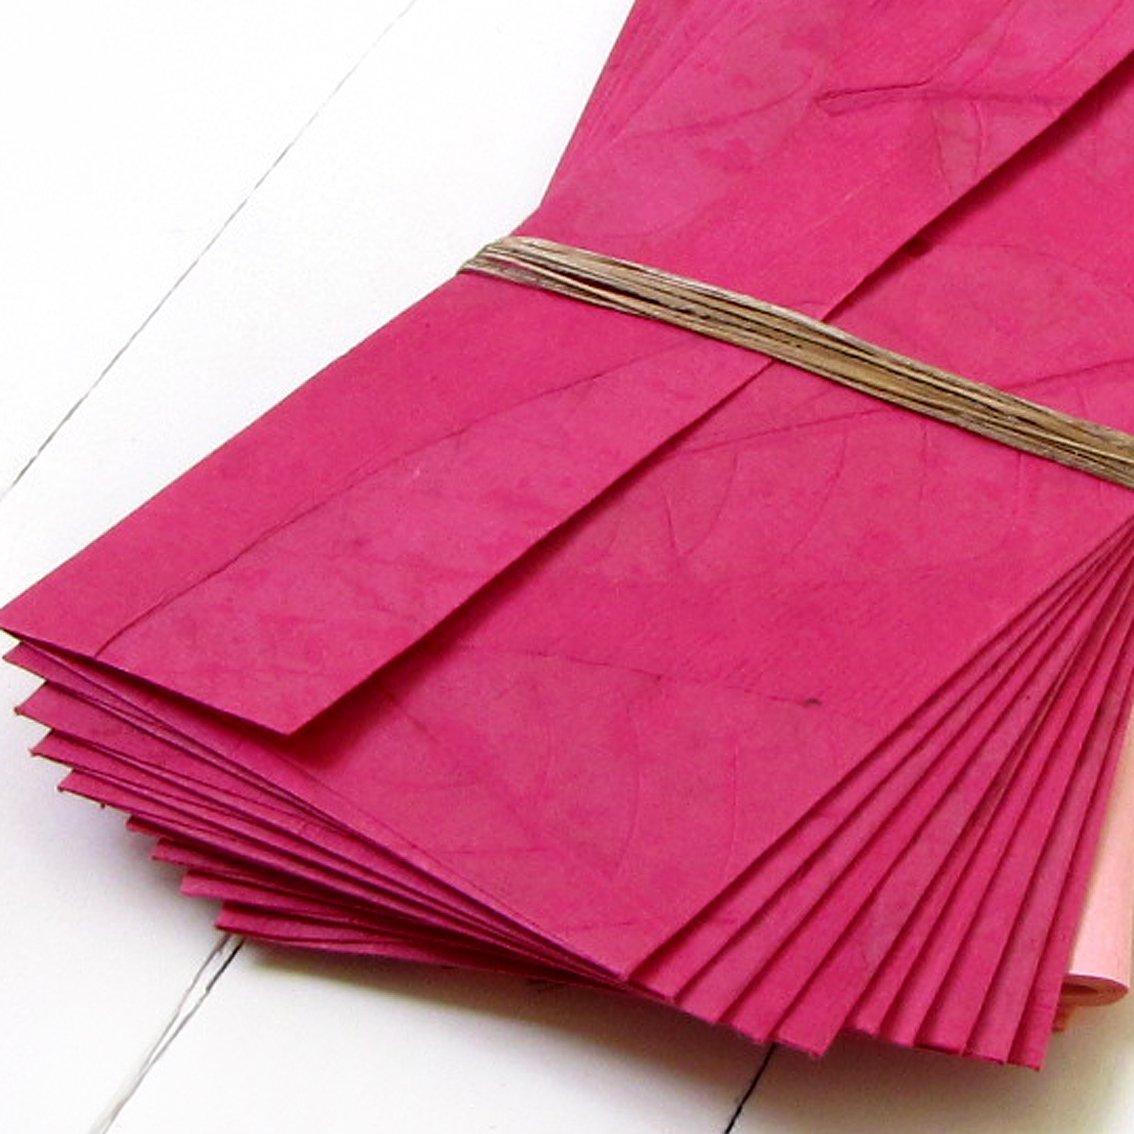 Tree free handmade natural leaf paper stationery letter set 10 recycled craft Mom gift hot pink